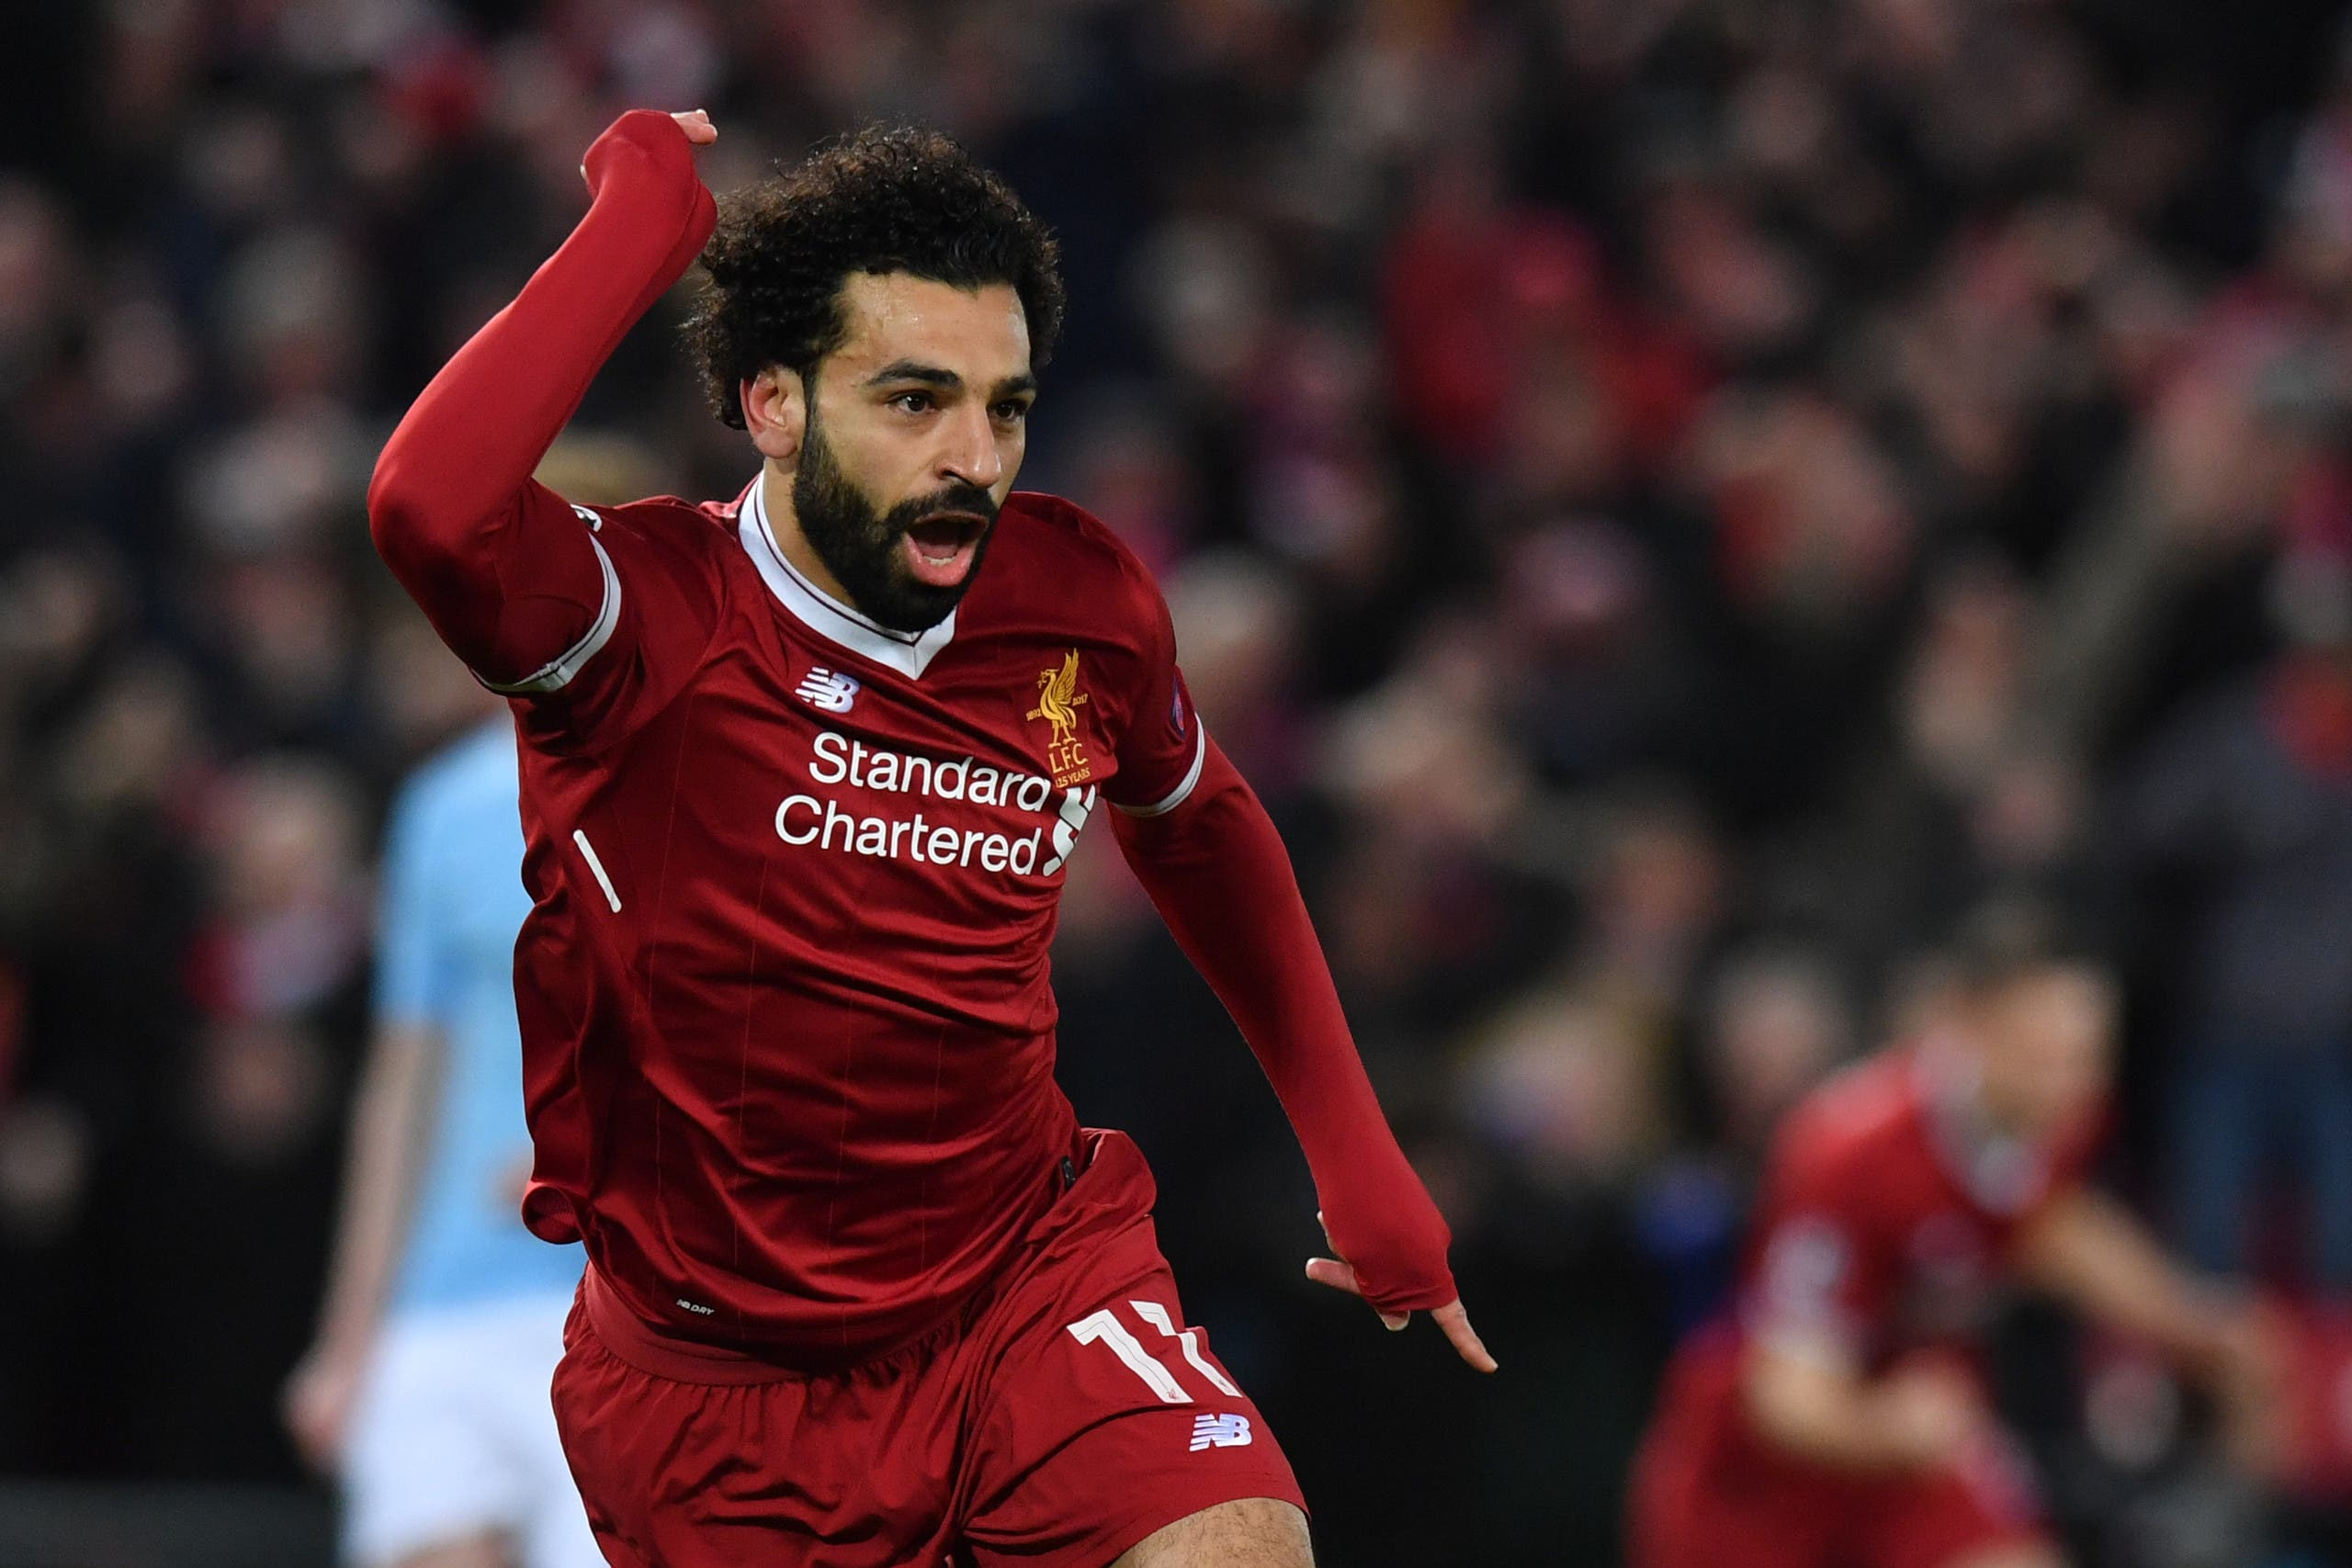 Liverpool's Egyptian midfielder Mohamed Salah celebrates scoring the opening goal during the UEFA Champions League first leg quarter-final football match between Liverpool and Manchester City on April 4, 2018. (AFP)